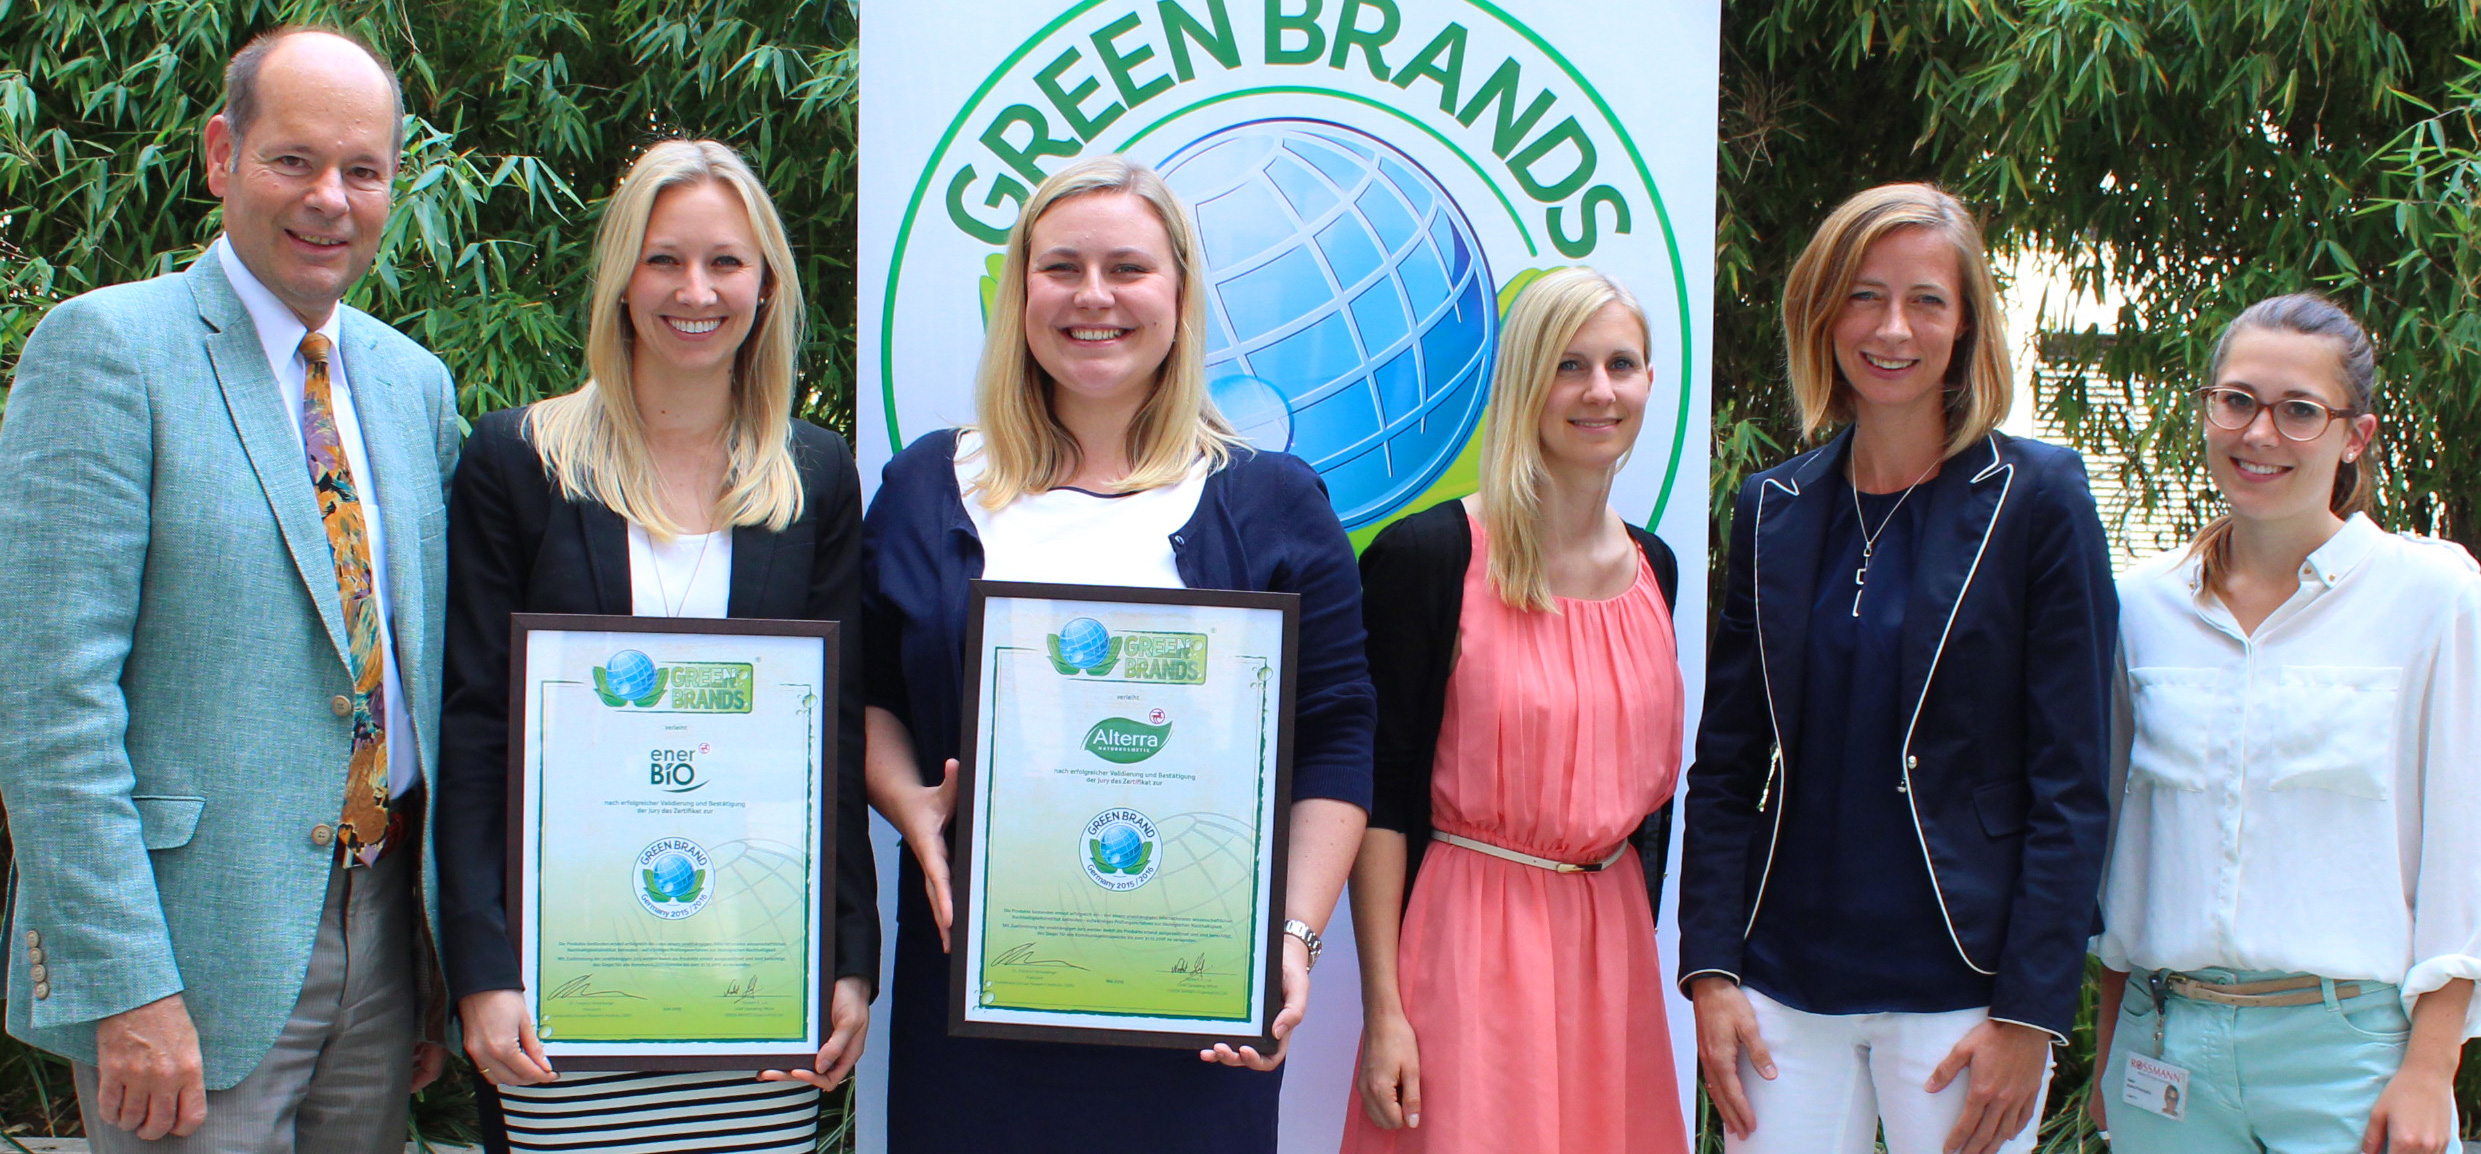 GREEN BRANDS Award für Alterra & enerBiO